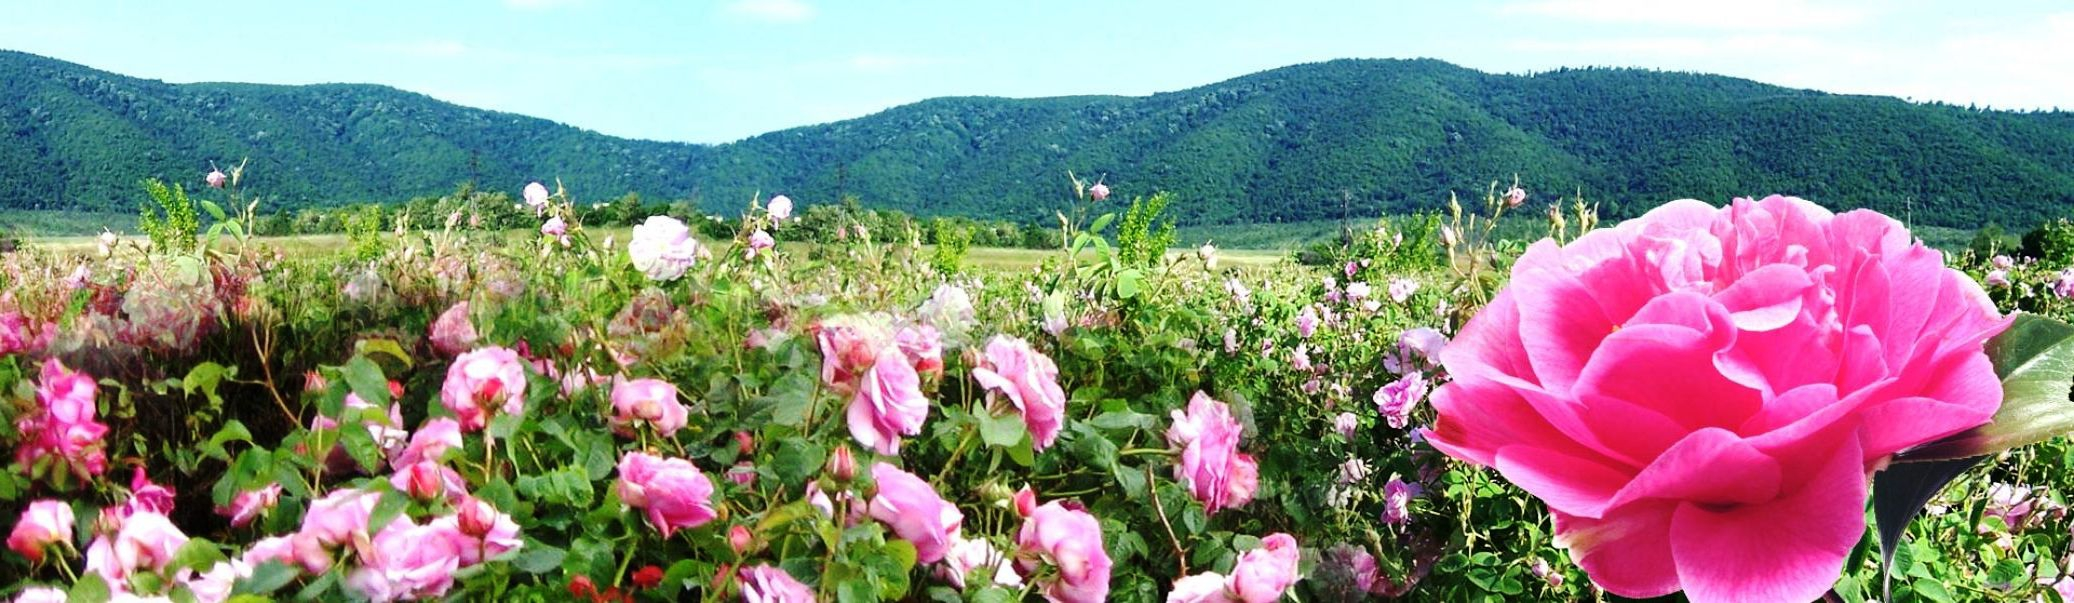 Visit of the Rose Festival 2020 in Kazanlak and discovery of the Valley of the Thracian Kings - Travel To Bulgaria